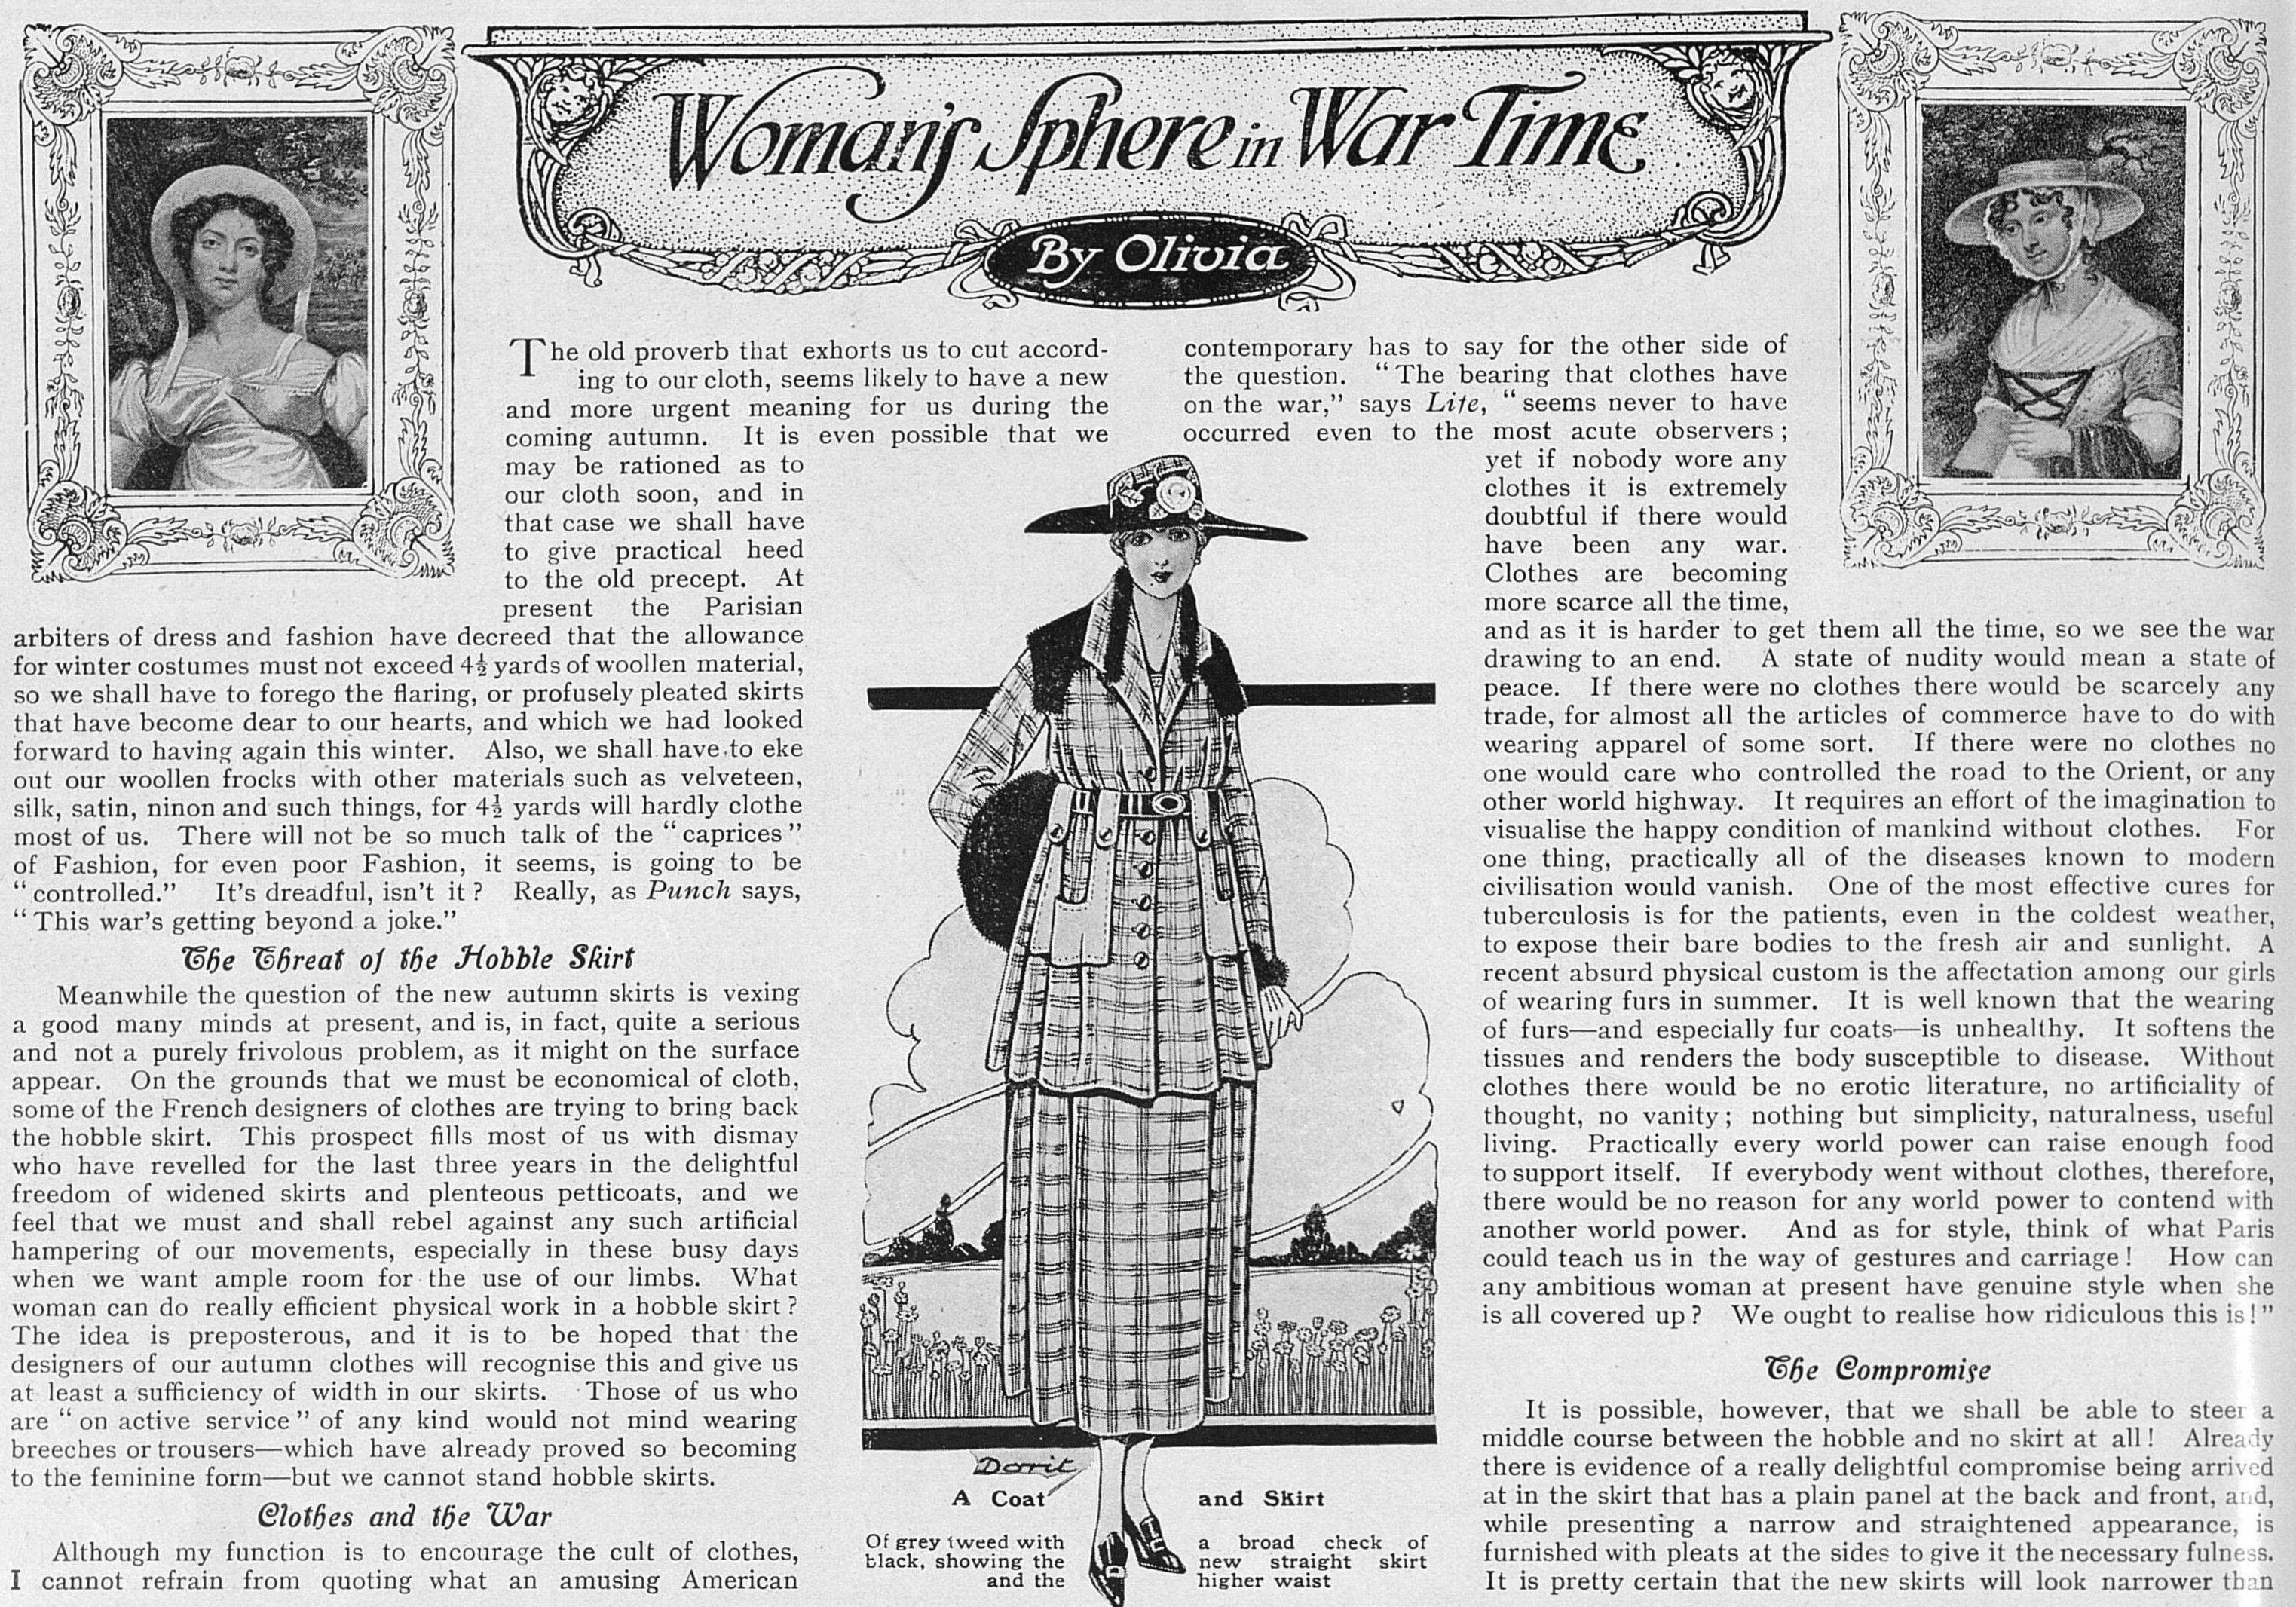 WomansSphereInWarTime_15Sep1917